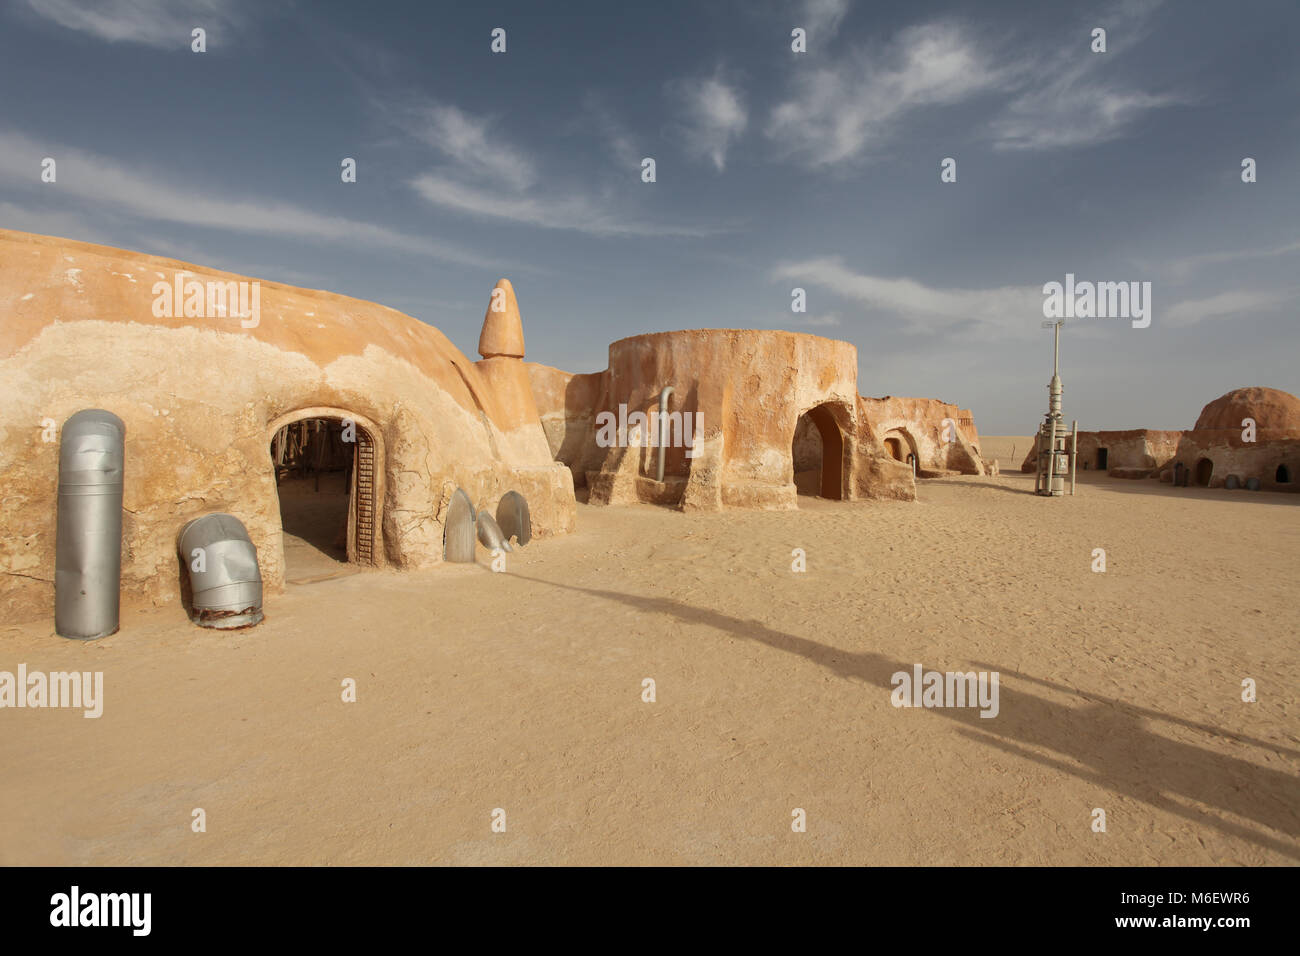 The scenery for the movie 'Star Wars' director George. Lucas, the Sahara Desert, Tunisia - Stock Image